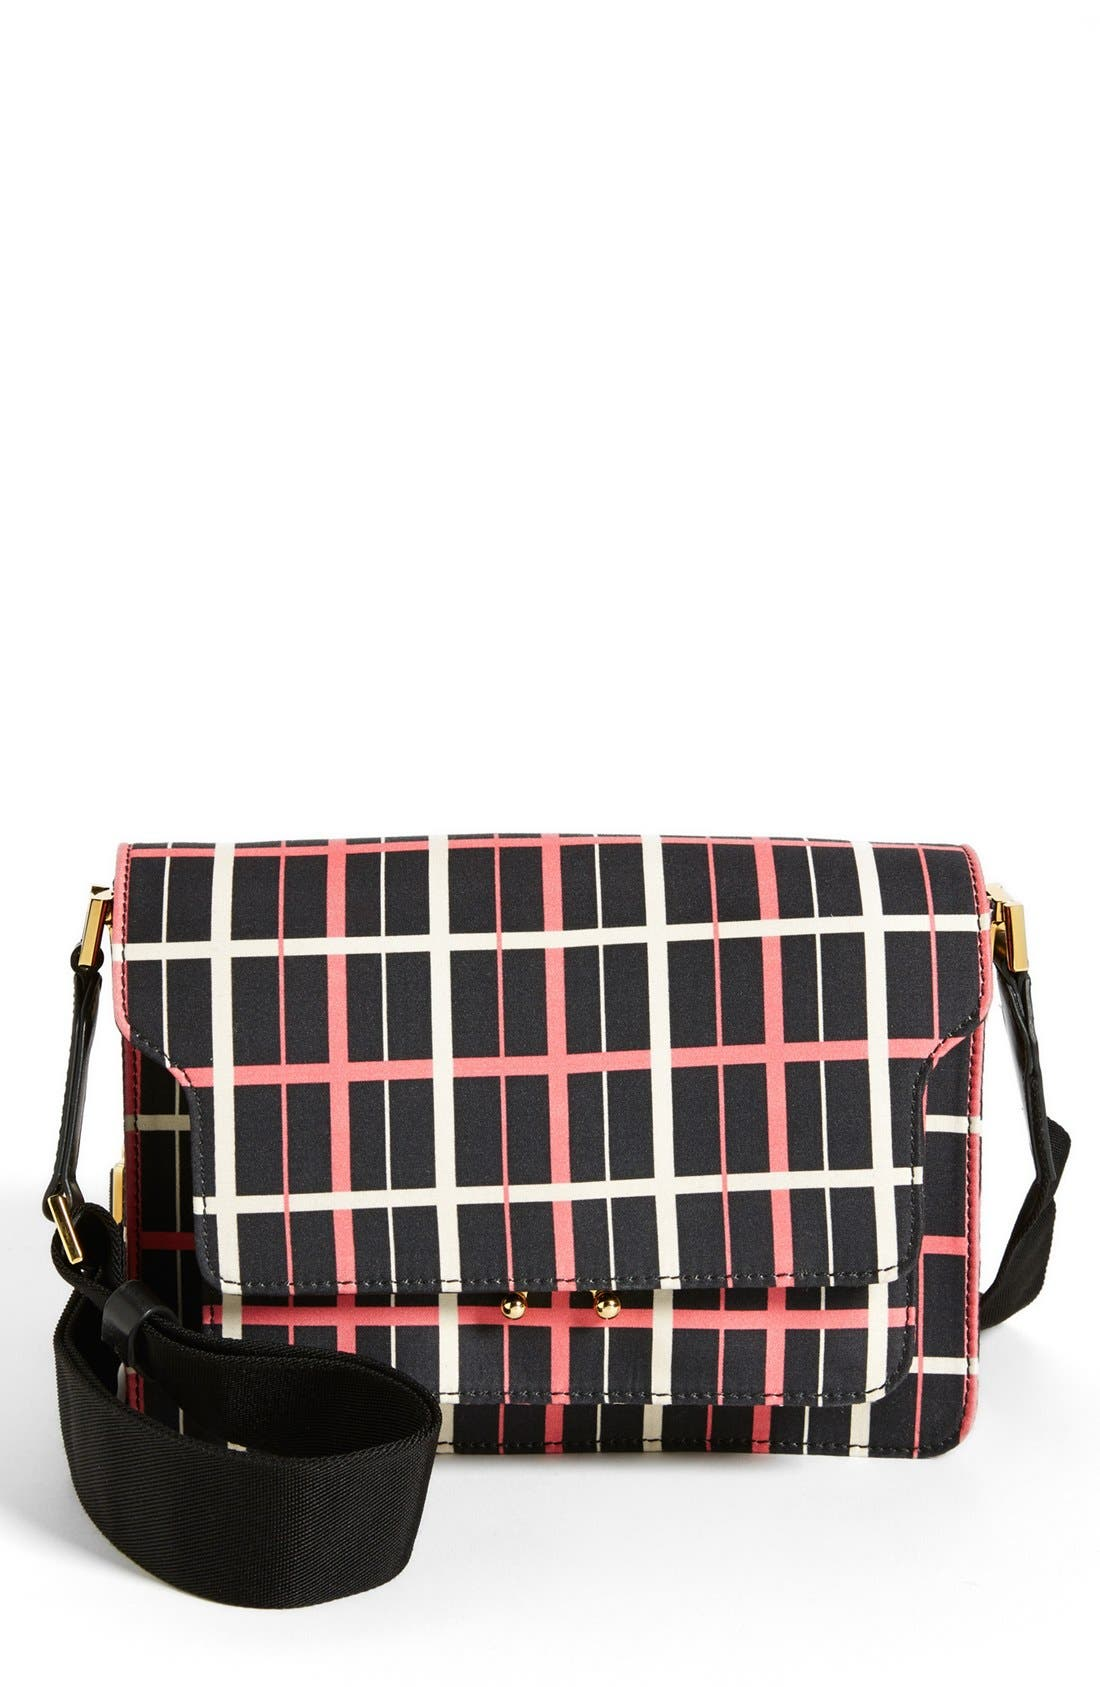 Main Image - Marni Graphic Print Double Partition Crossbody Bag